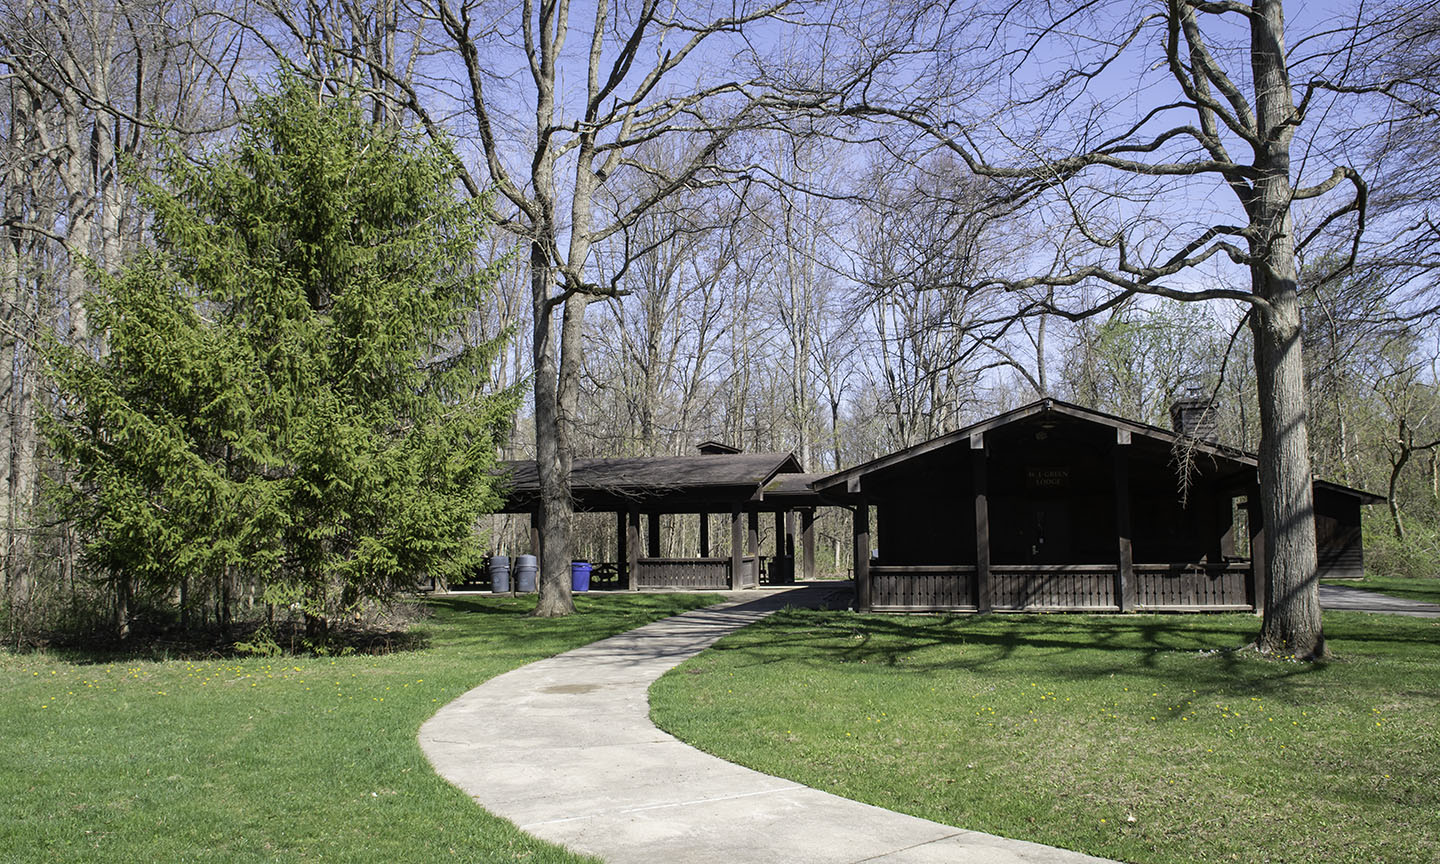 W.J. Green Picnic Area